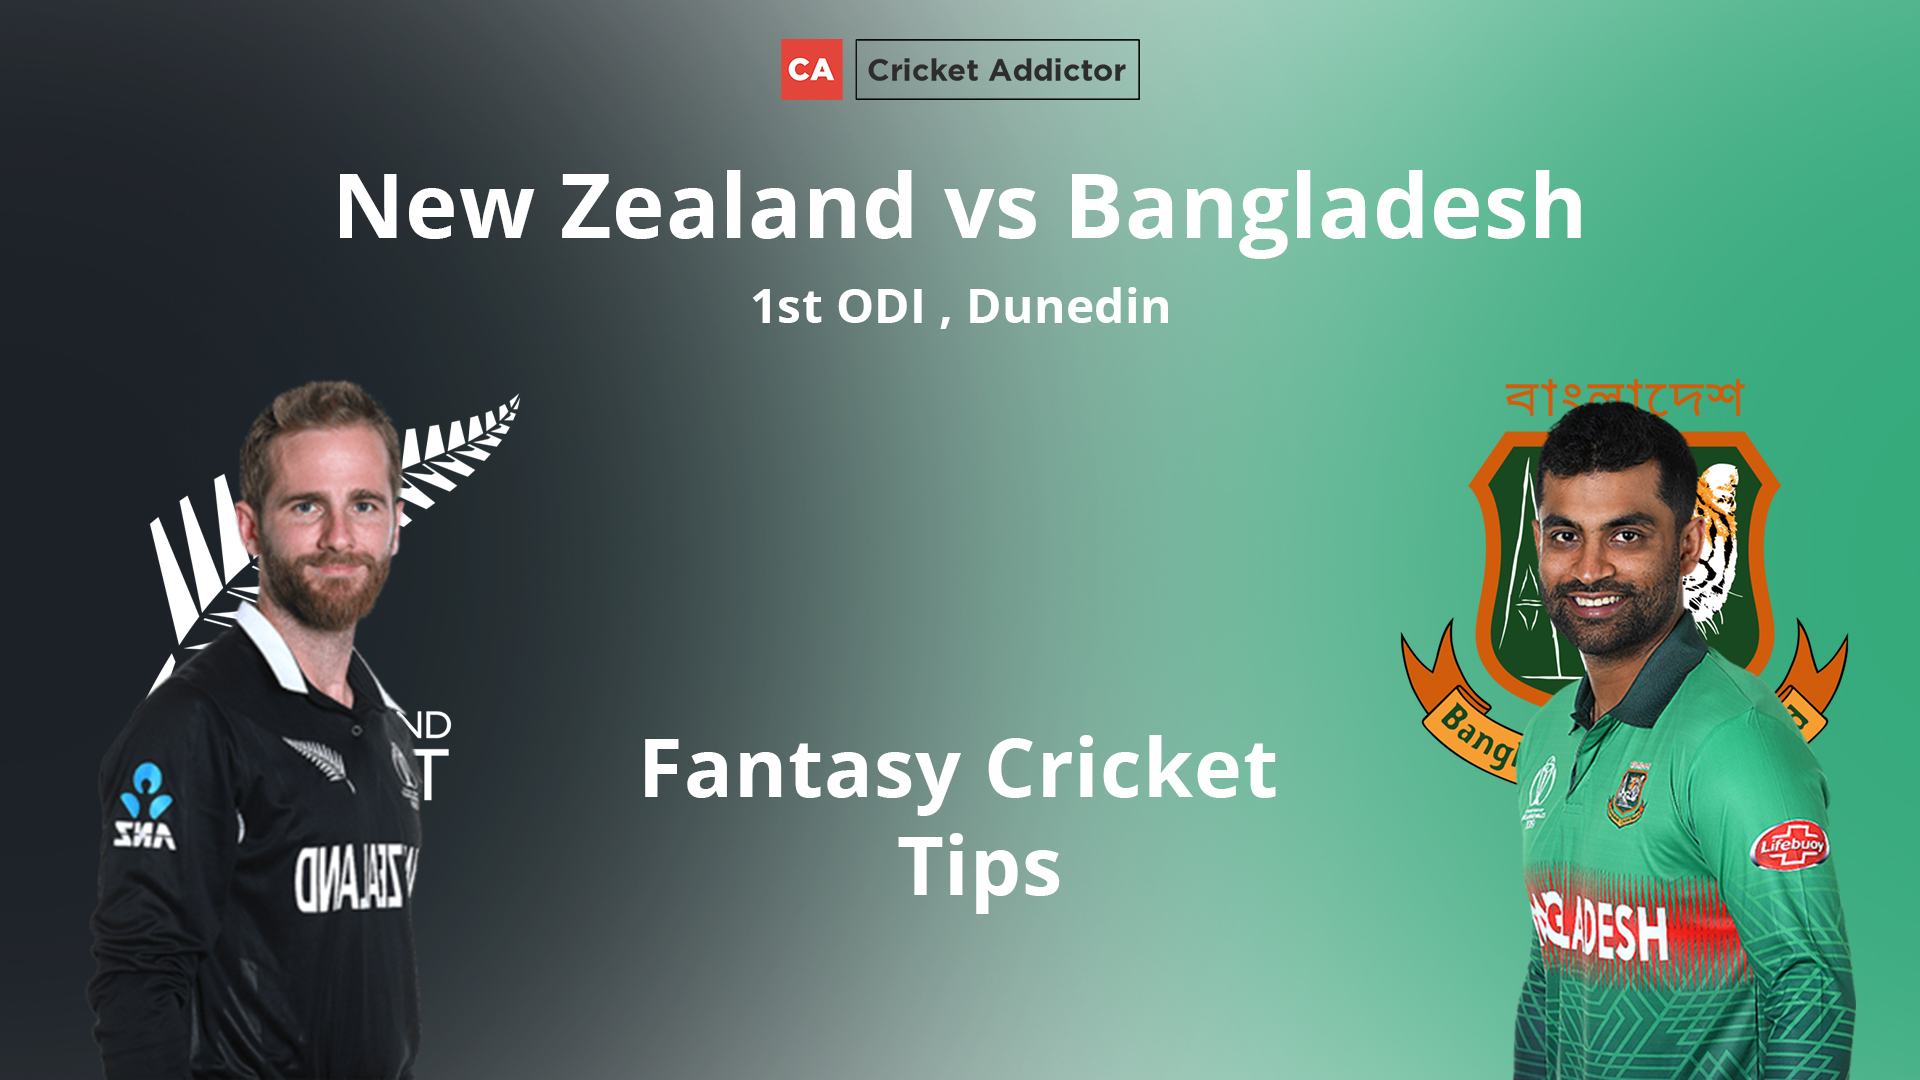 New Zealand vs Bangladesh 1st ODI Dream11 Prediction, Fantasy Cricket Tips, Playing XI, Pitch Report, Dream11 Team, and Injury Update.